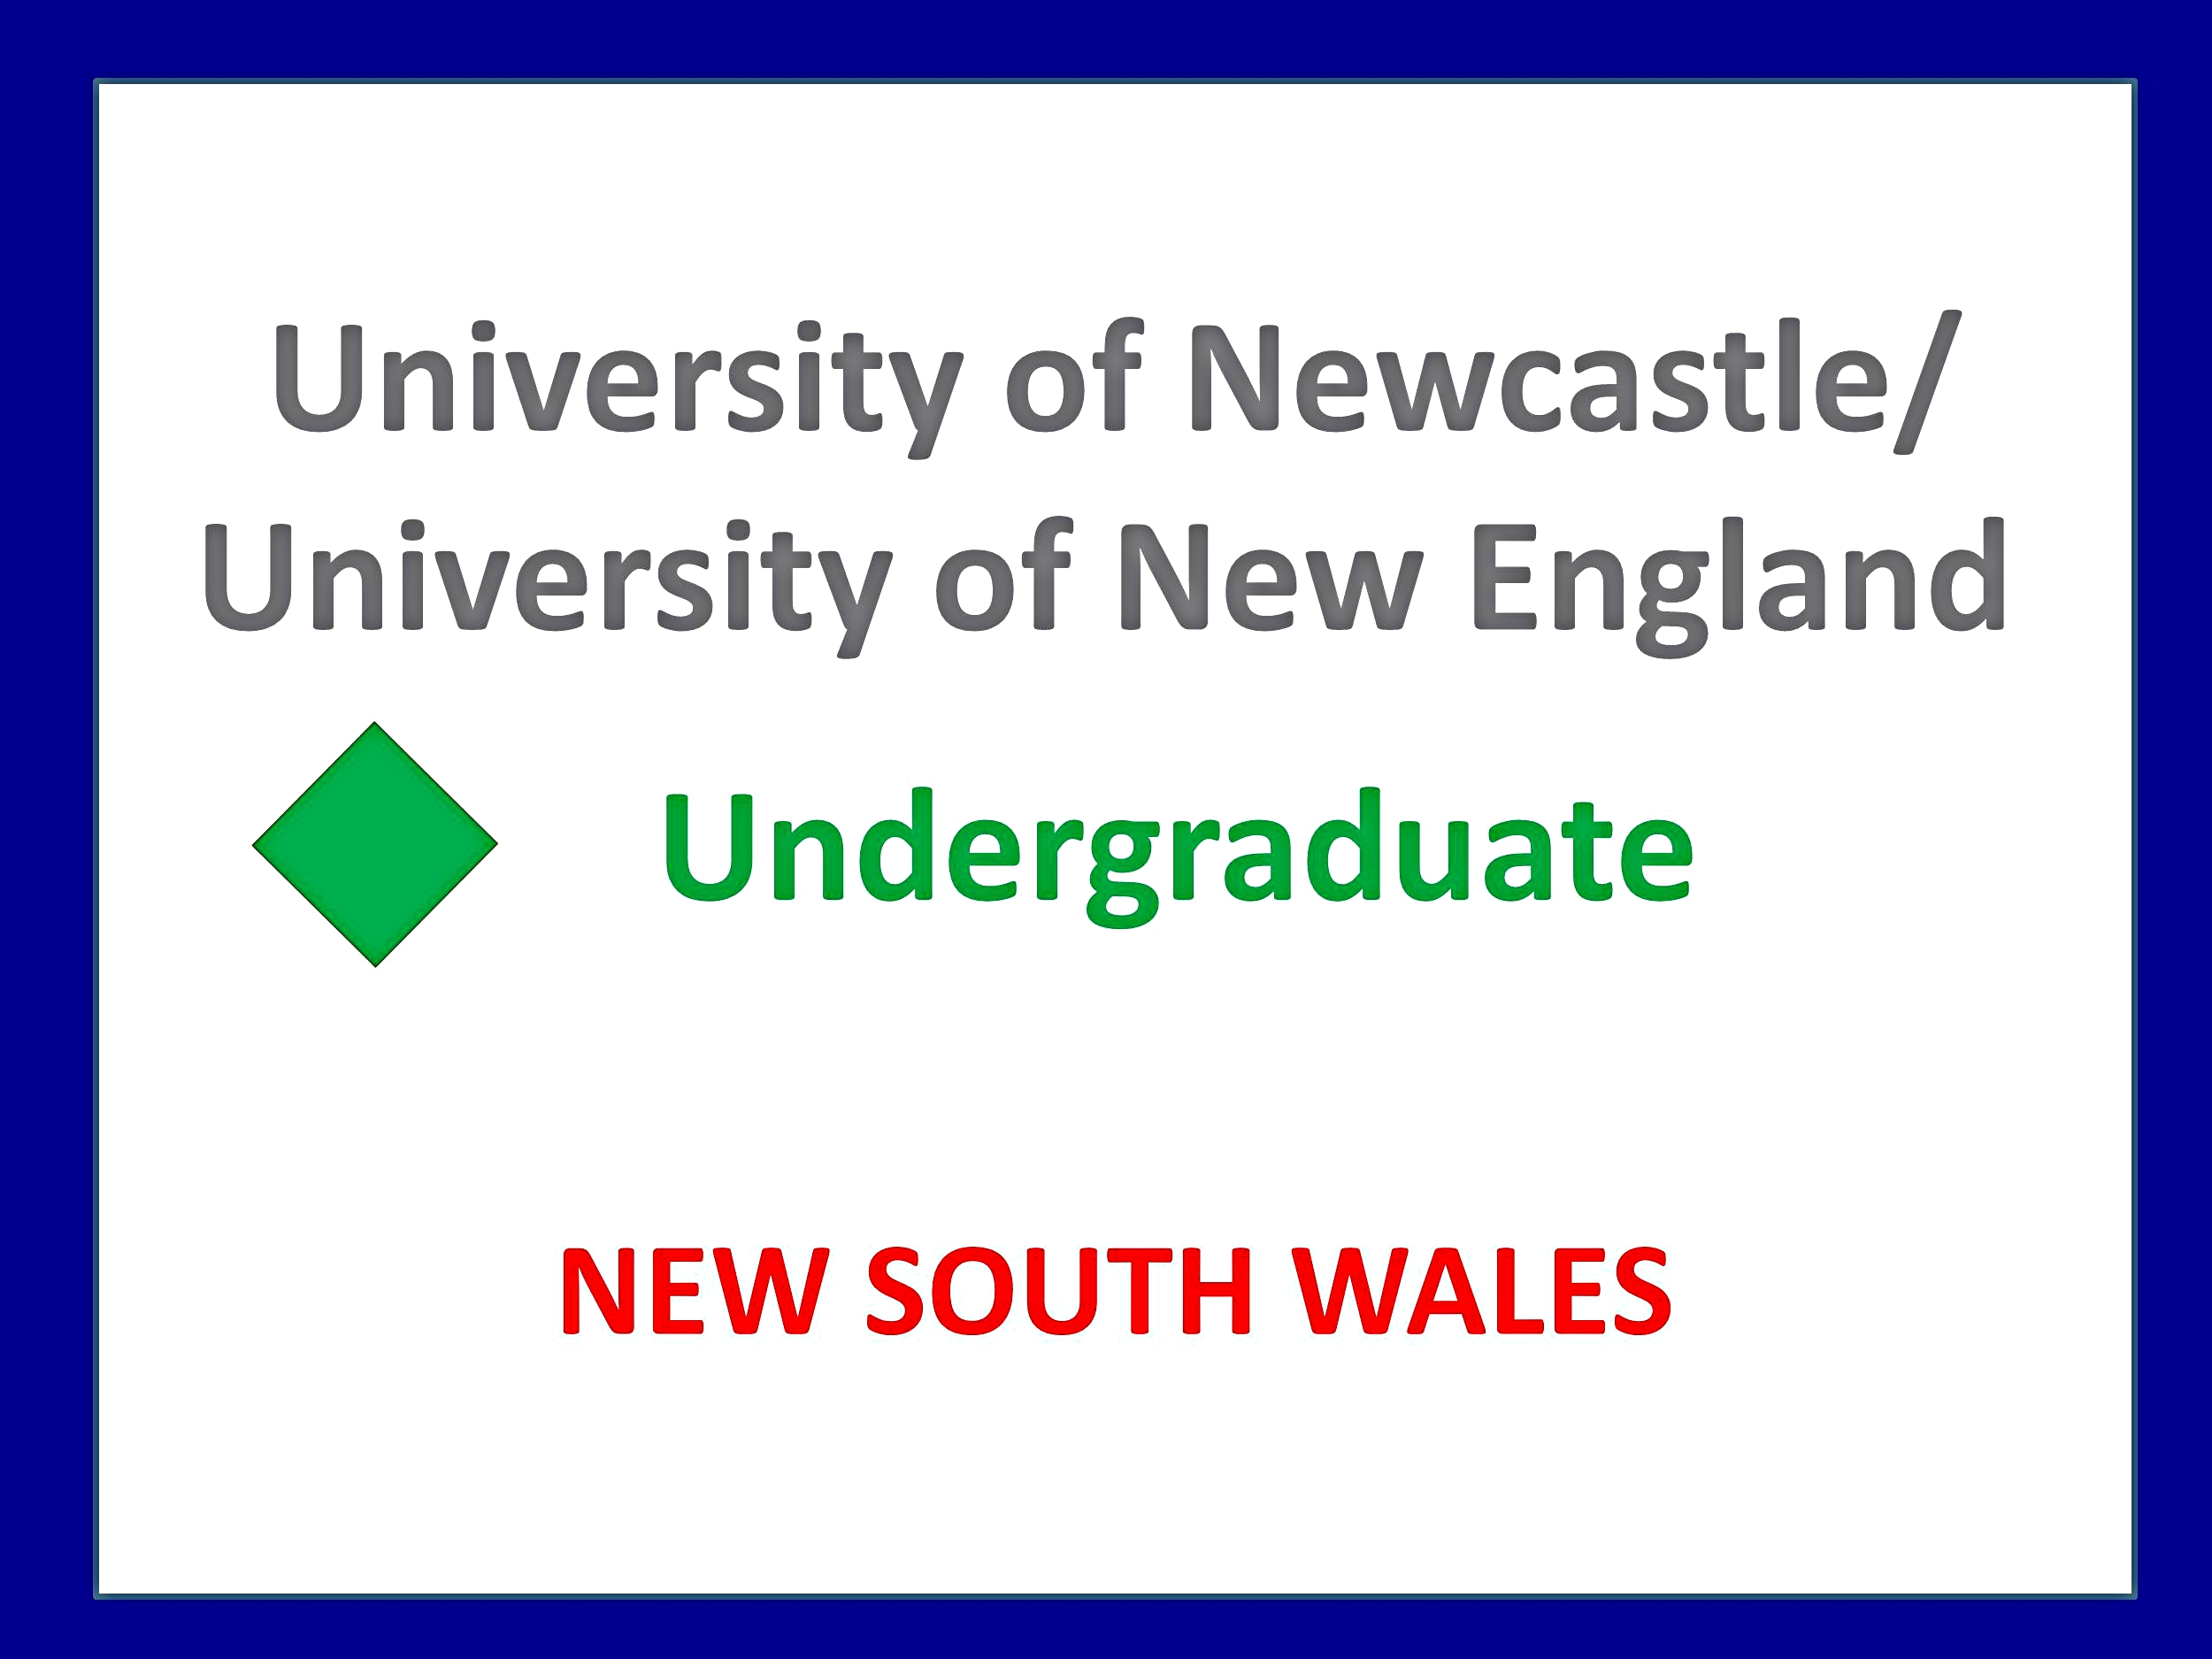 University of Newcastle university of new england